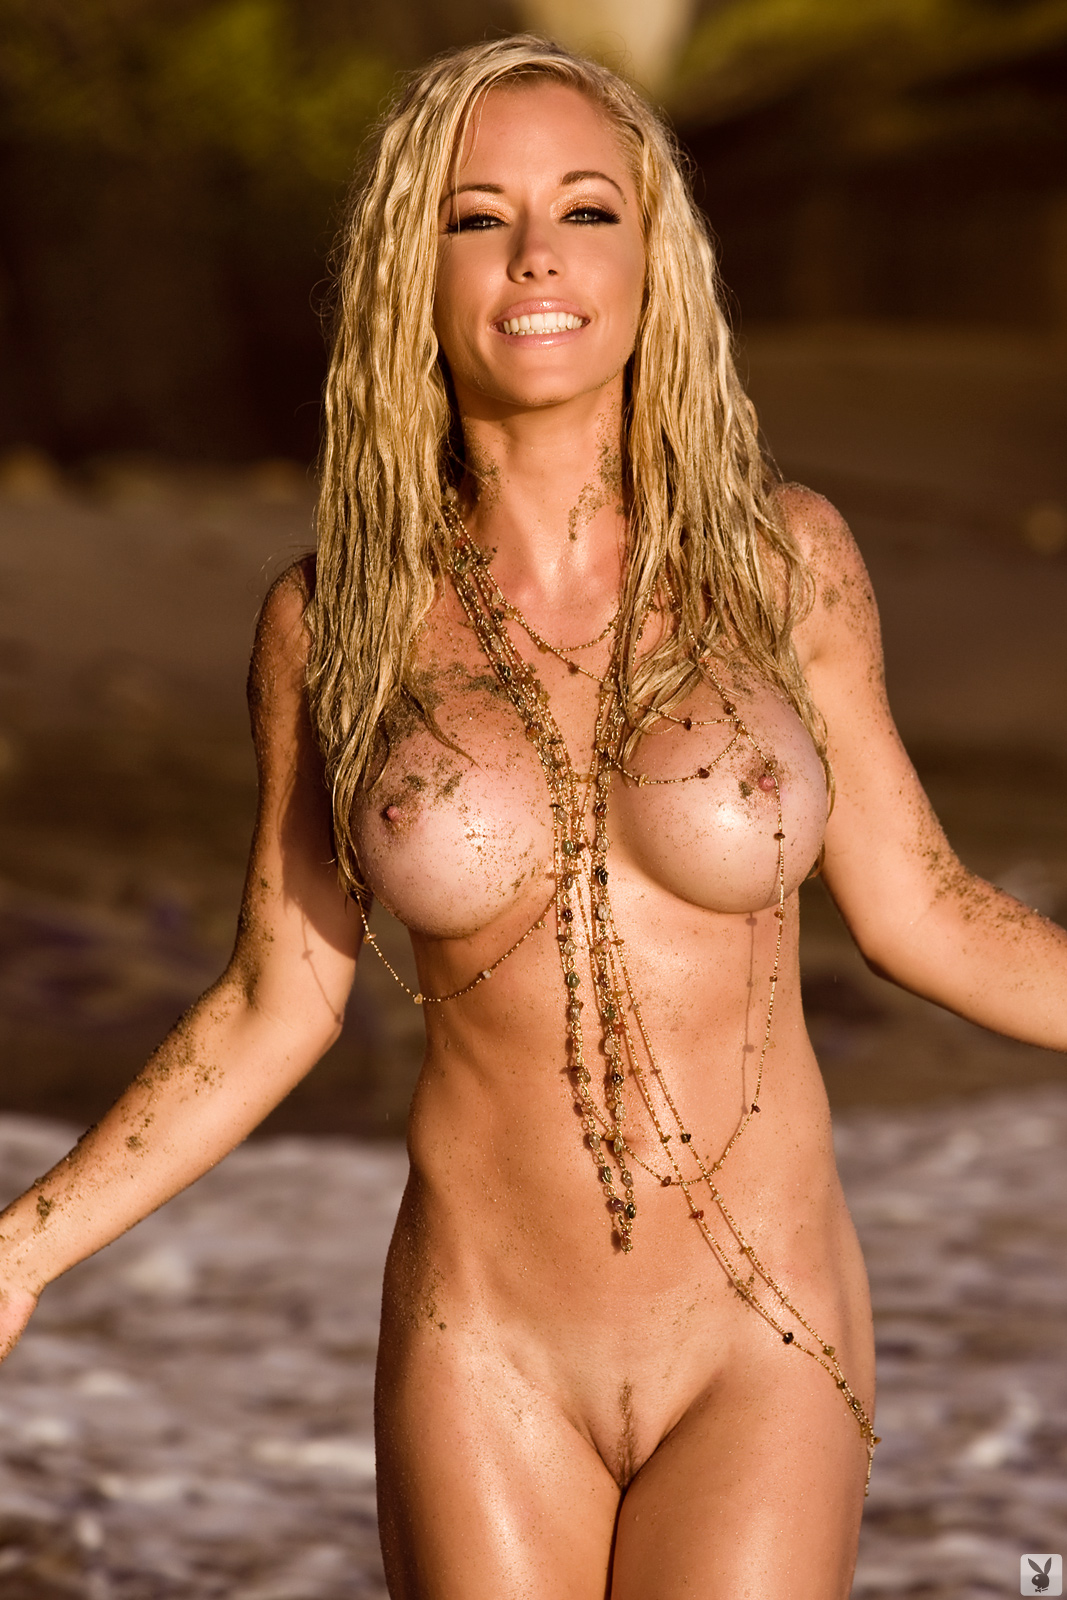 Kendra Wilkinson Playboy Pictures and Images